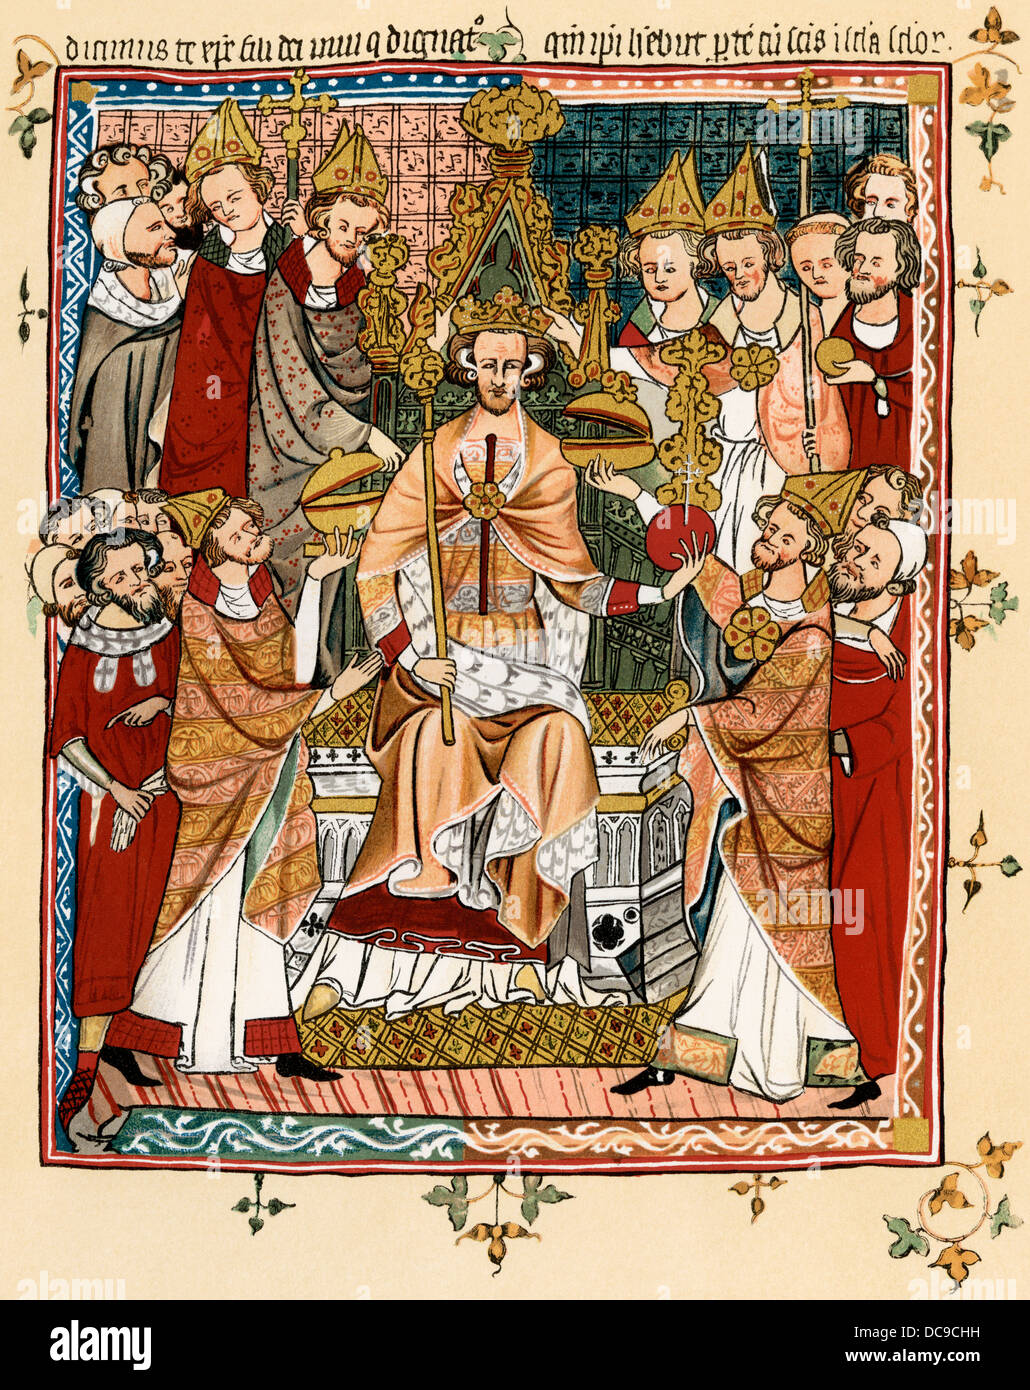 Coronation of a king, early 14th century. Color lithograph reproduction - Stock Image